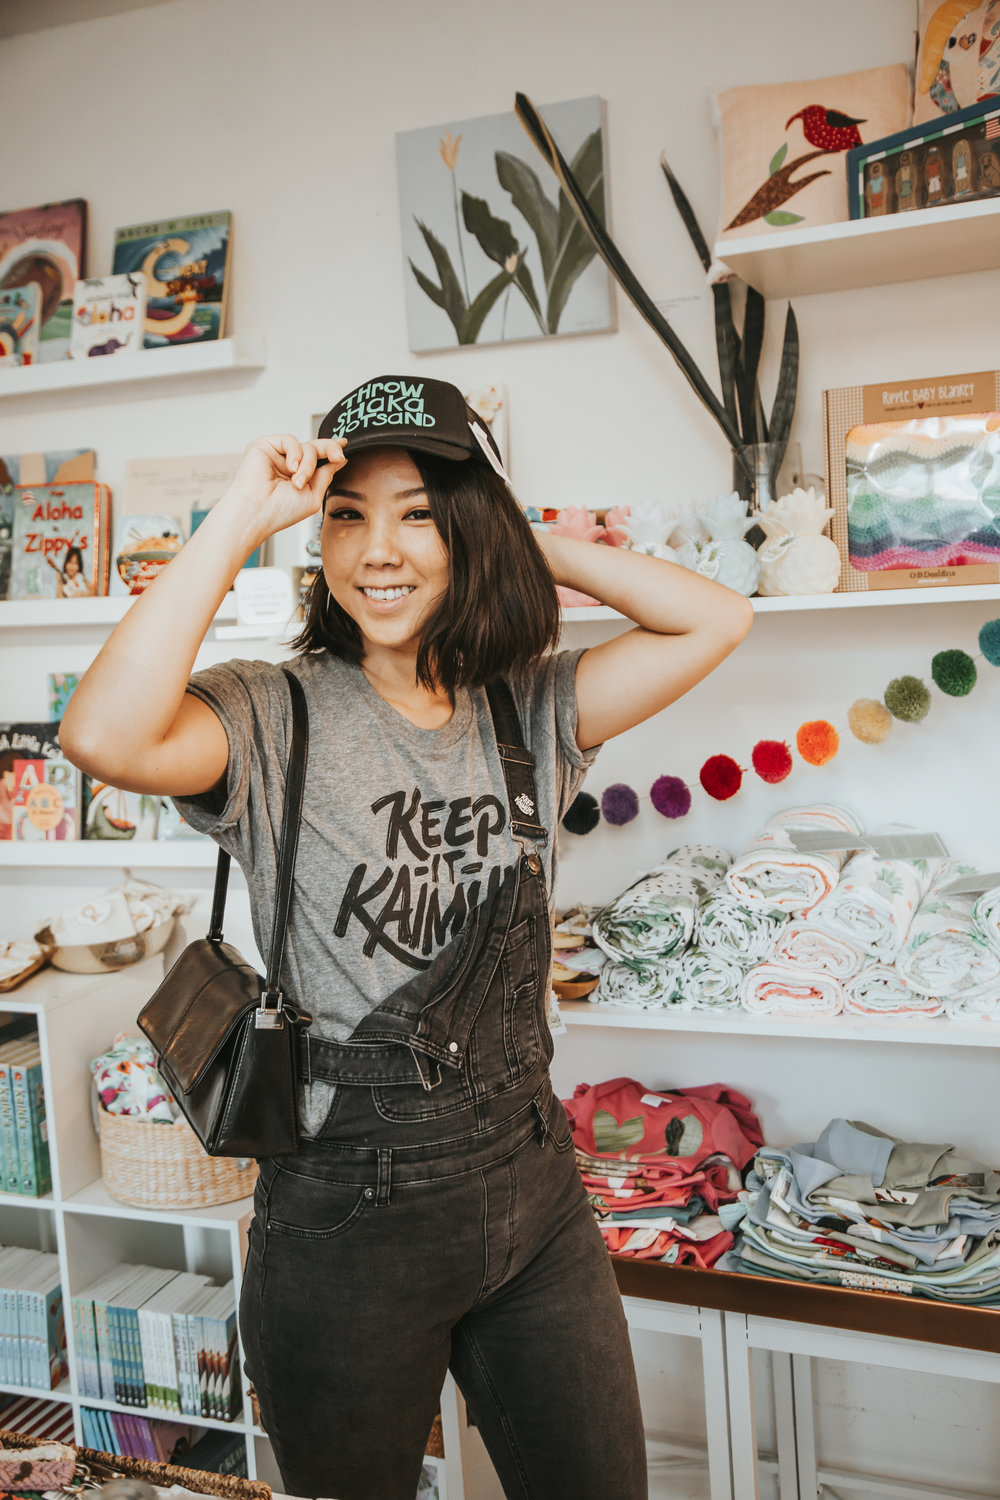 Find locally made lifestyle and fashion products at   Sugarcane Hawaii